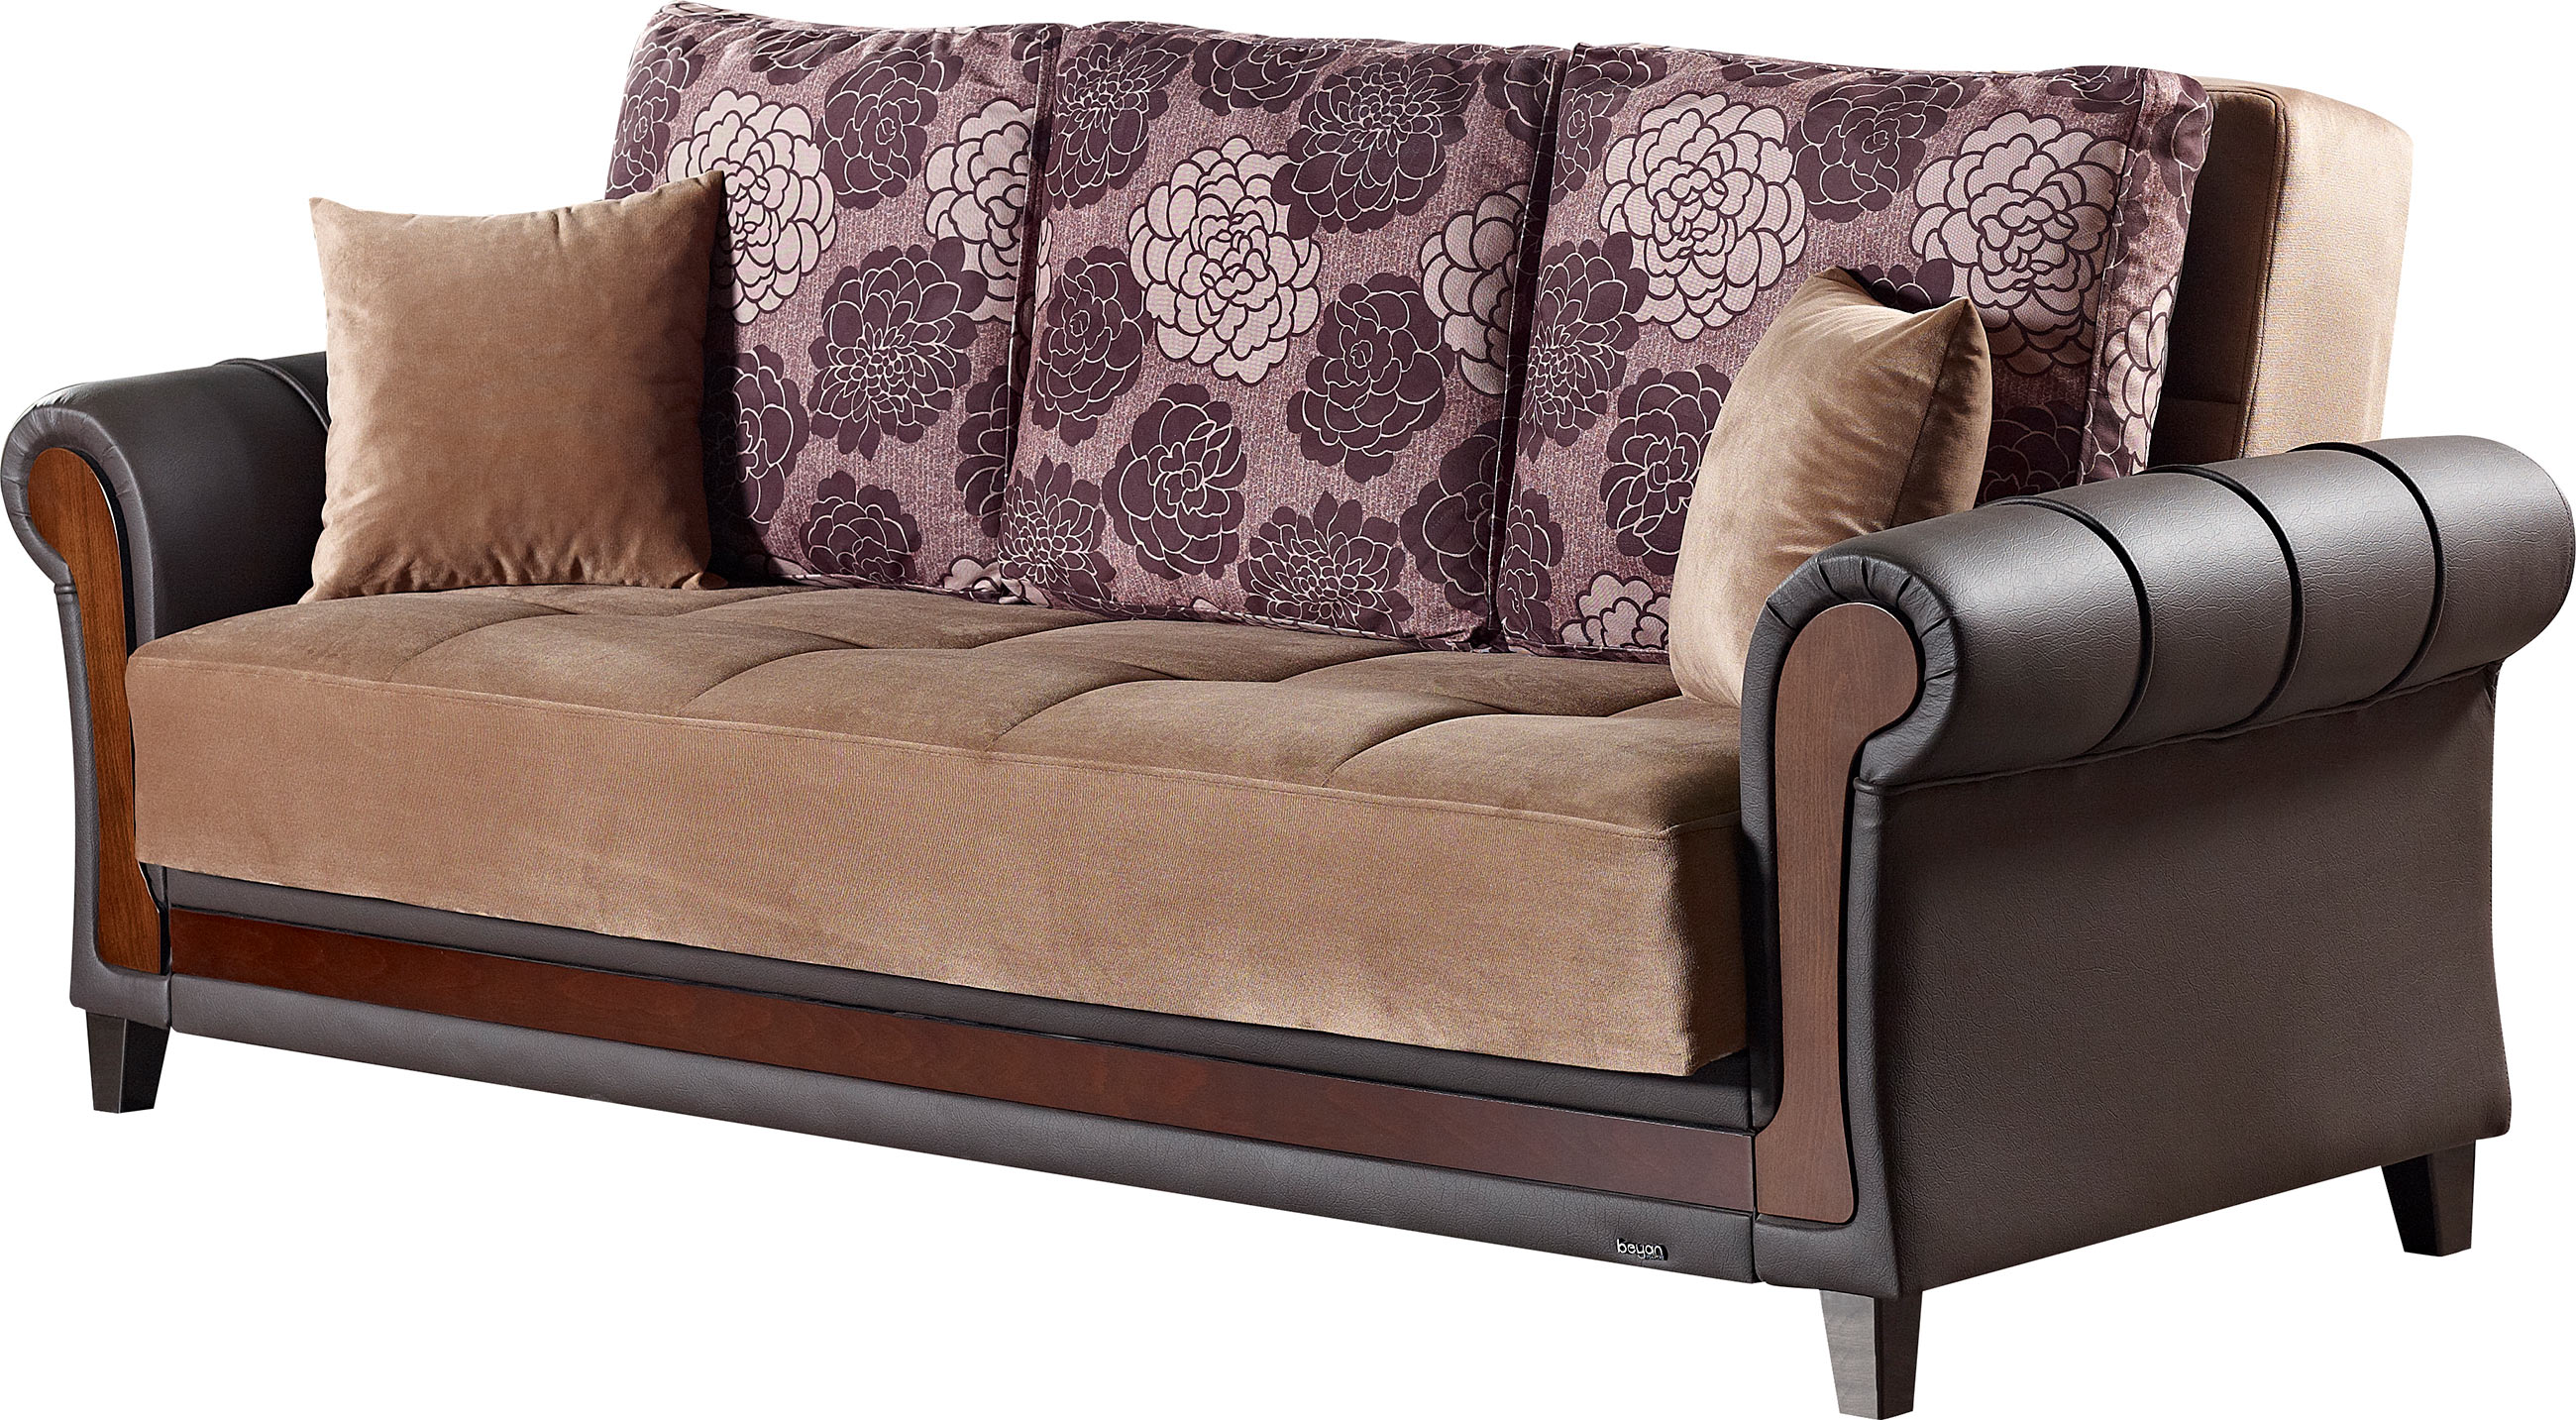 empire furniture sofa cheap tables idaho brown fabric bed by usa